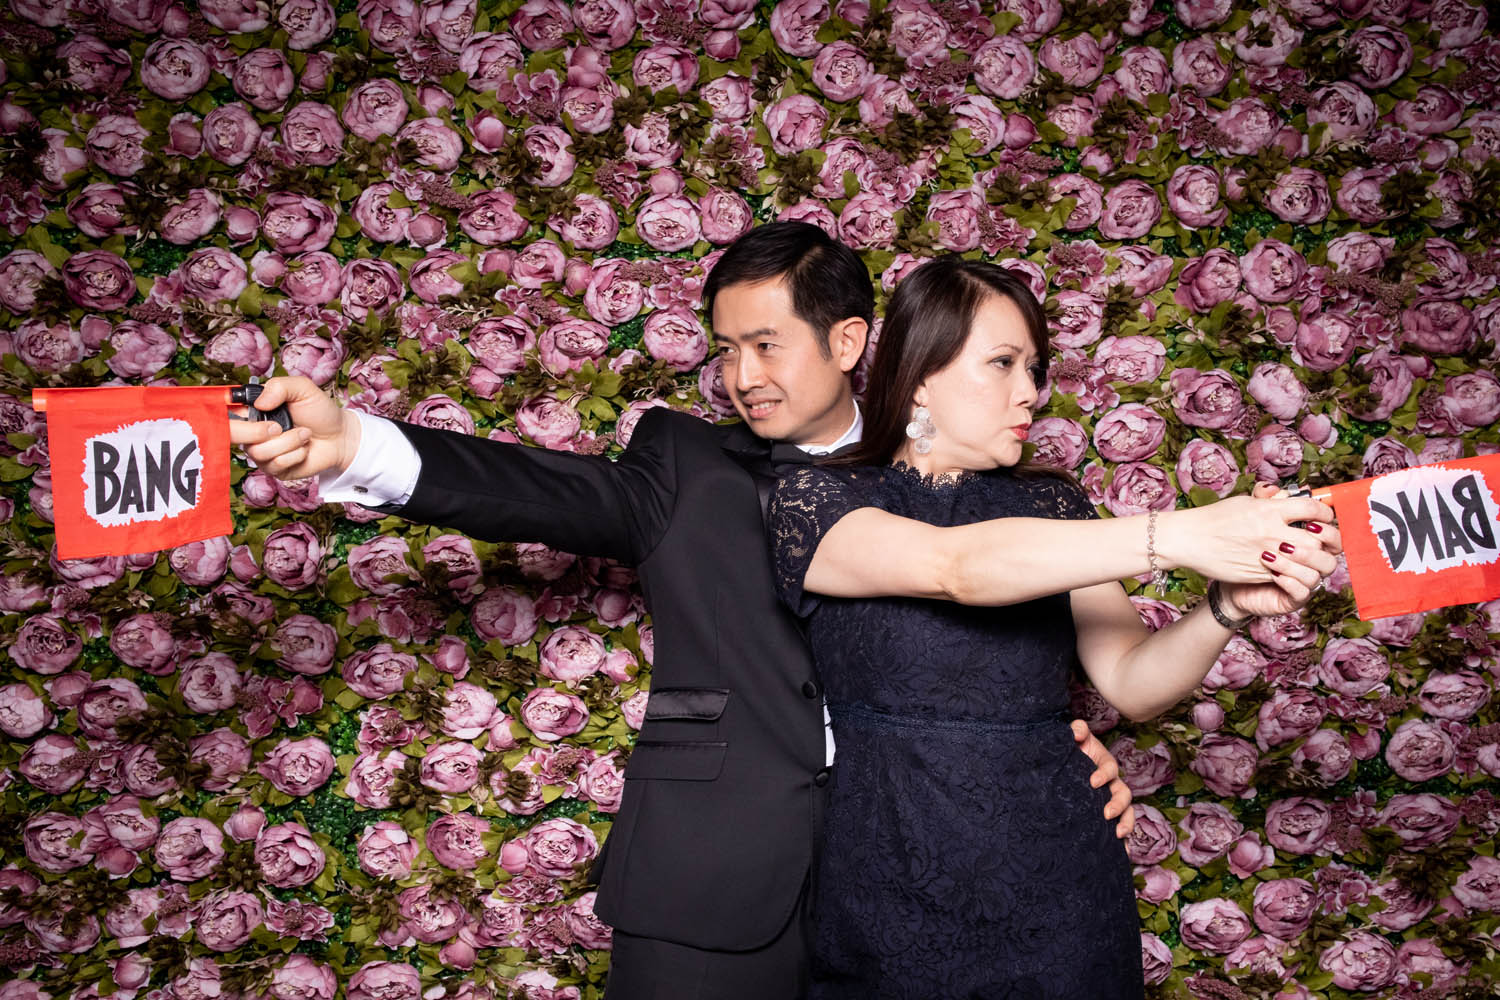 Rose Flower Wall Photo Booth